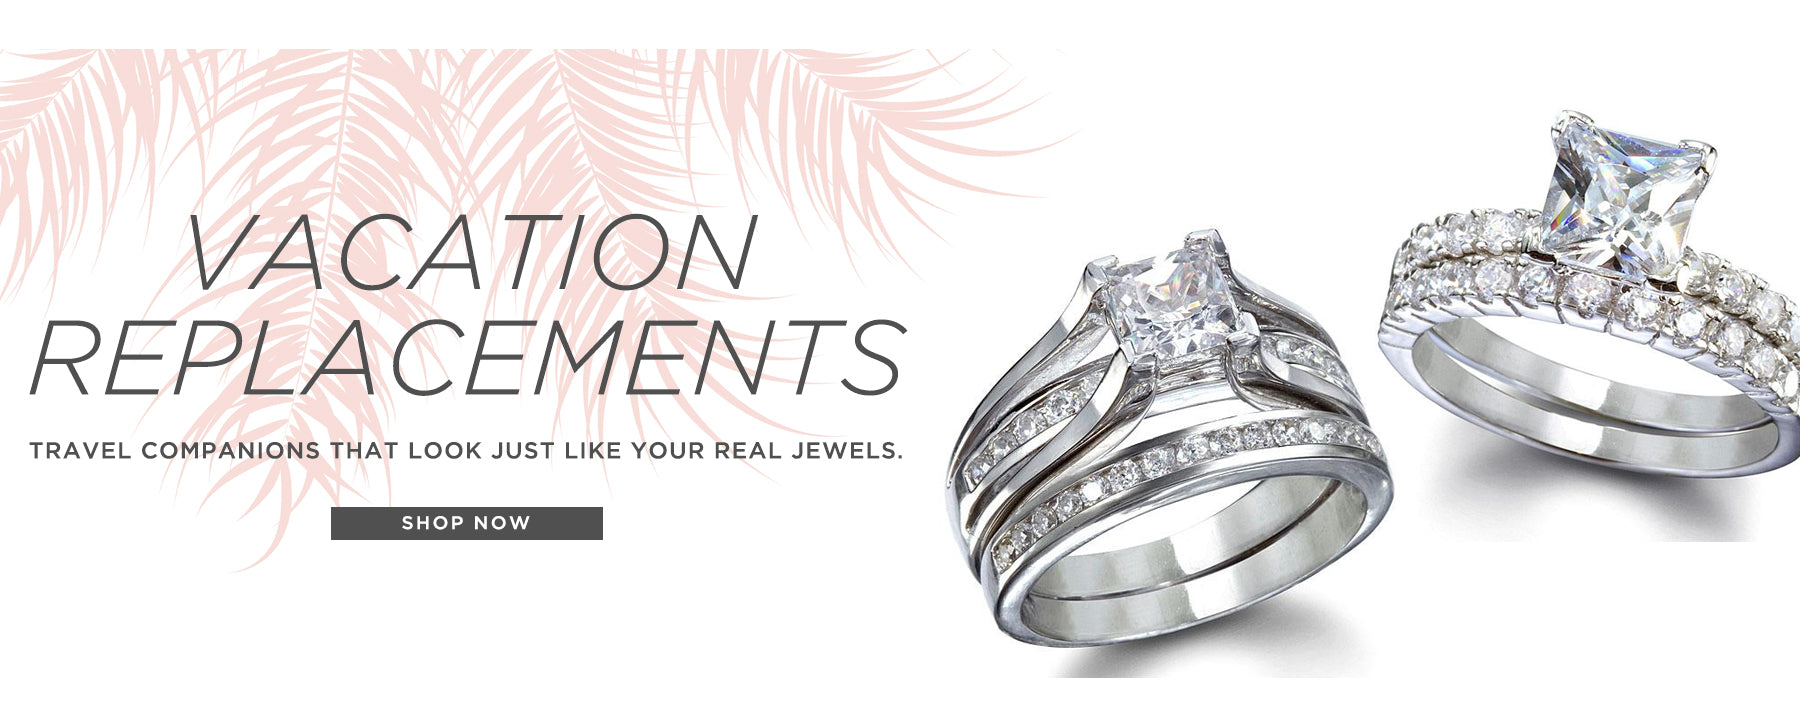 Vacation Replacements. Travel companions that look just like your real jewels. Shop now.